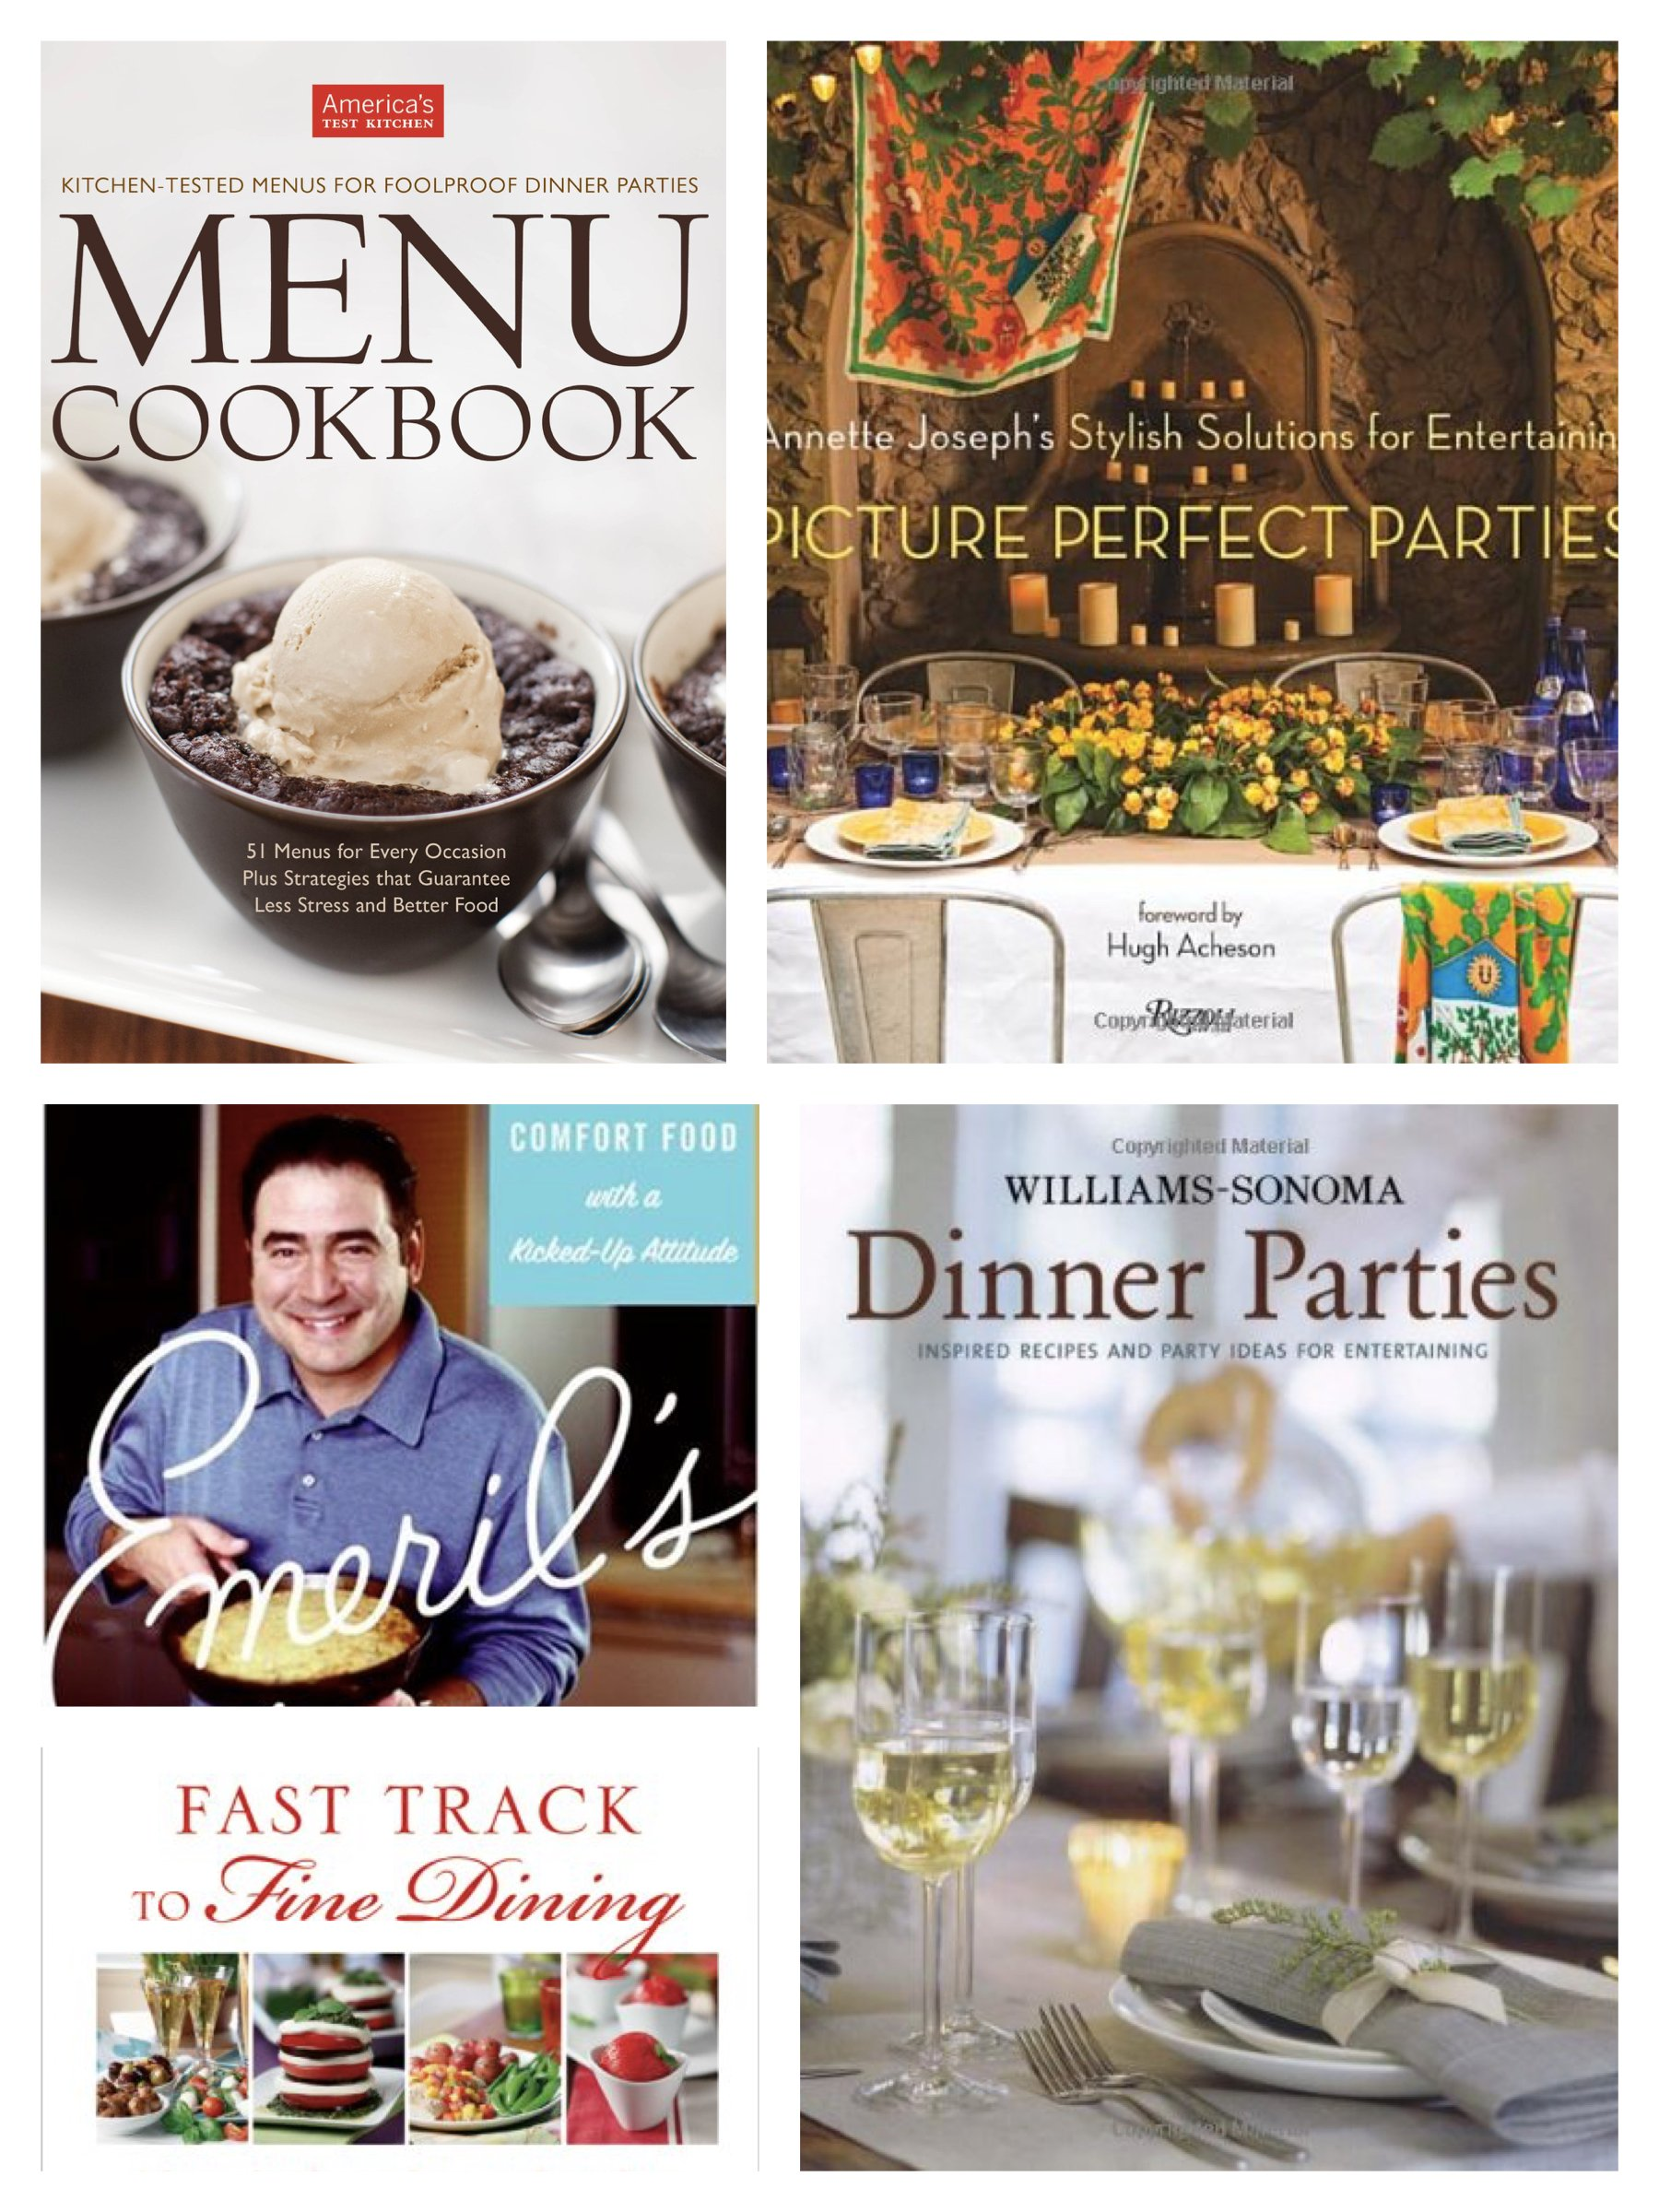 Dinner Party Cookbooks